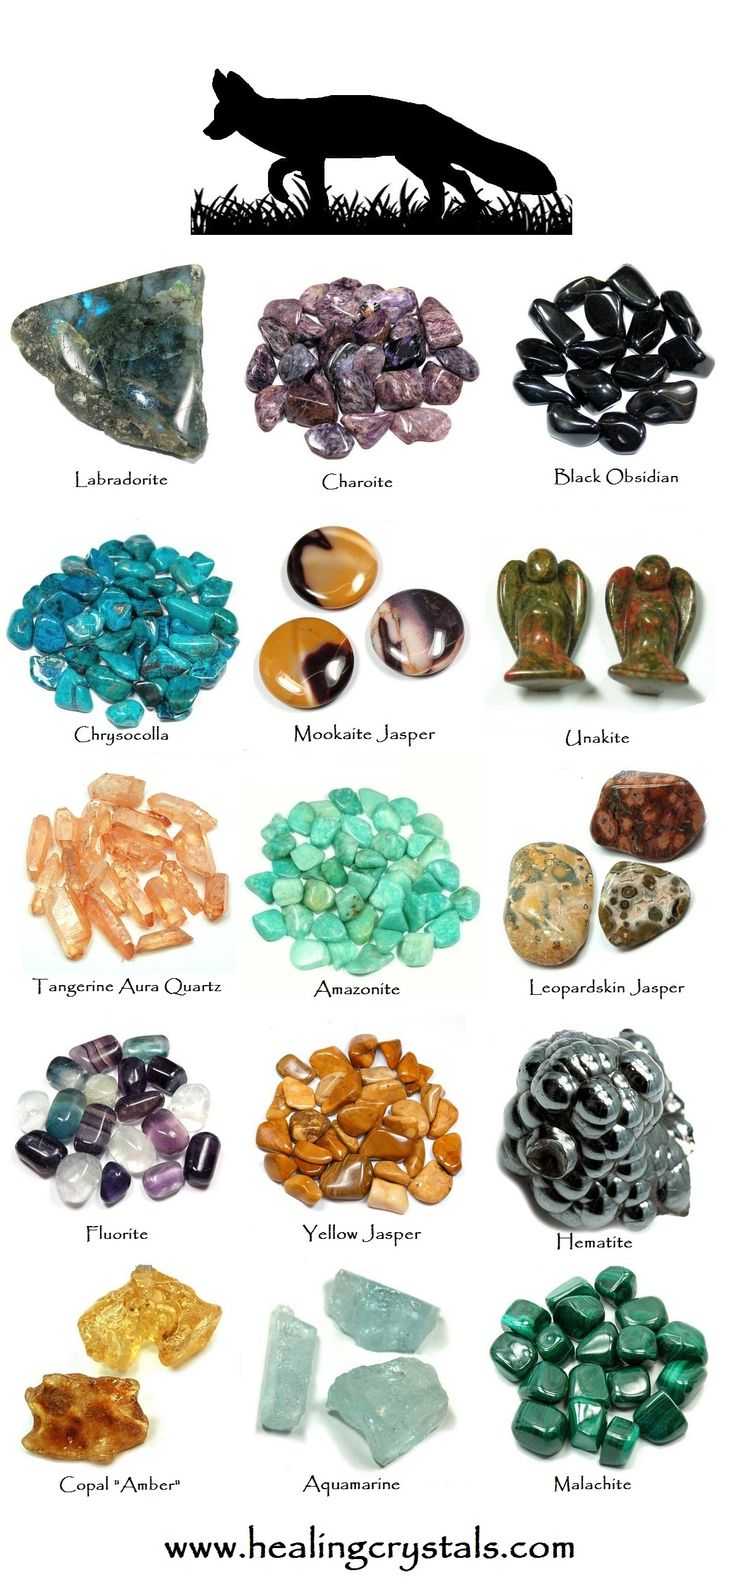 Fox Animal Totem - Crystal Reference Library - Information About Crystals As A Healing Tool